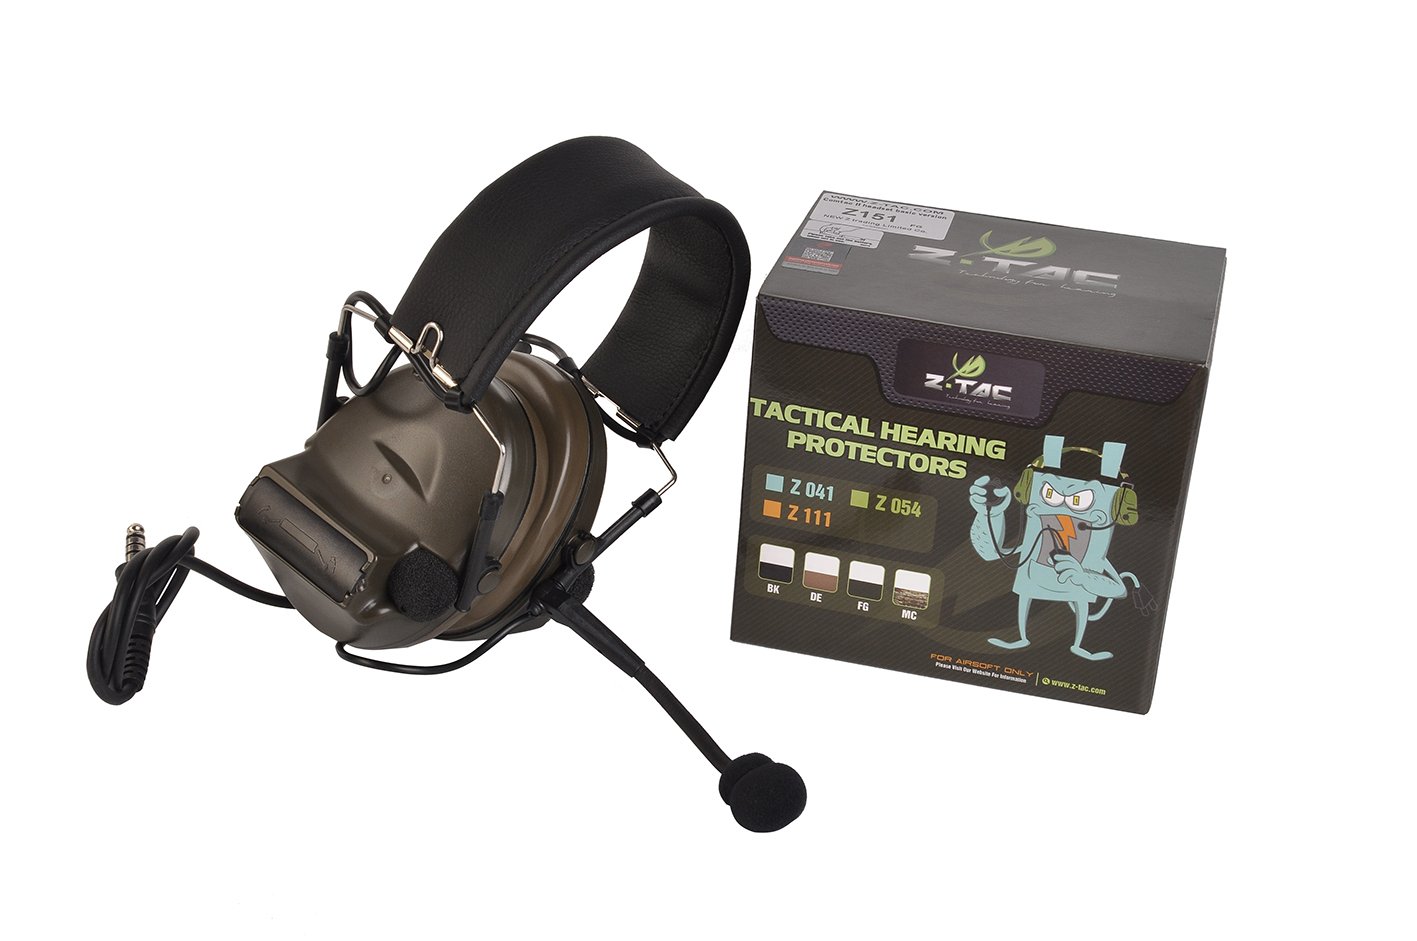 Z151 zComtac II headset basic version